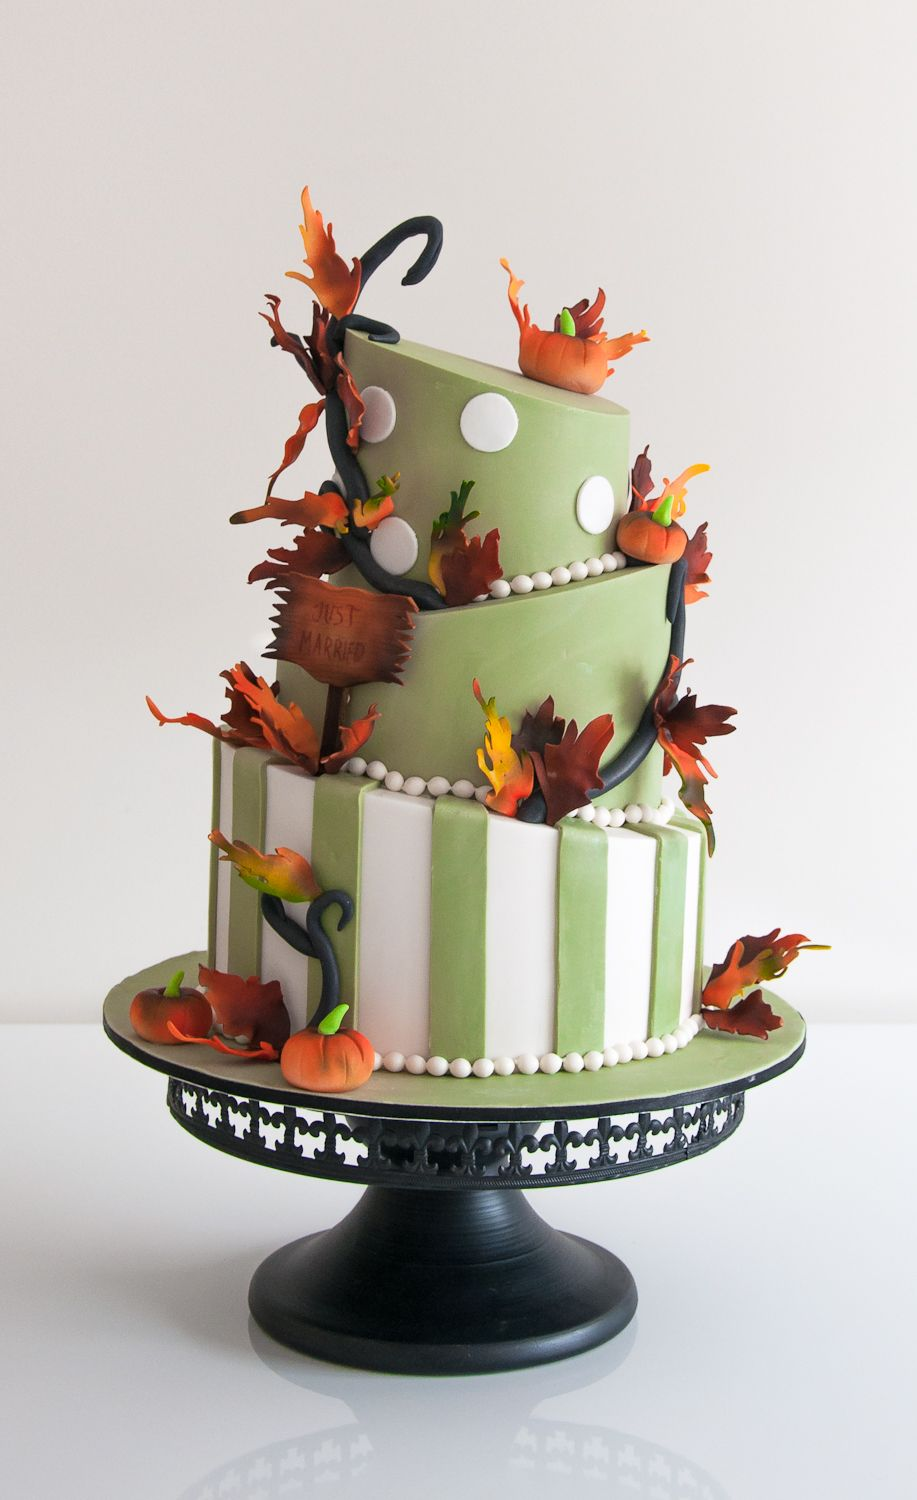 Birthday cakes impress your family and friends with a